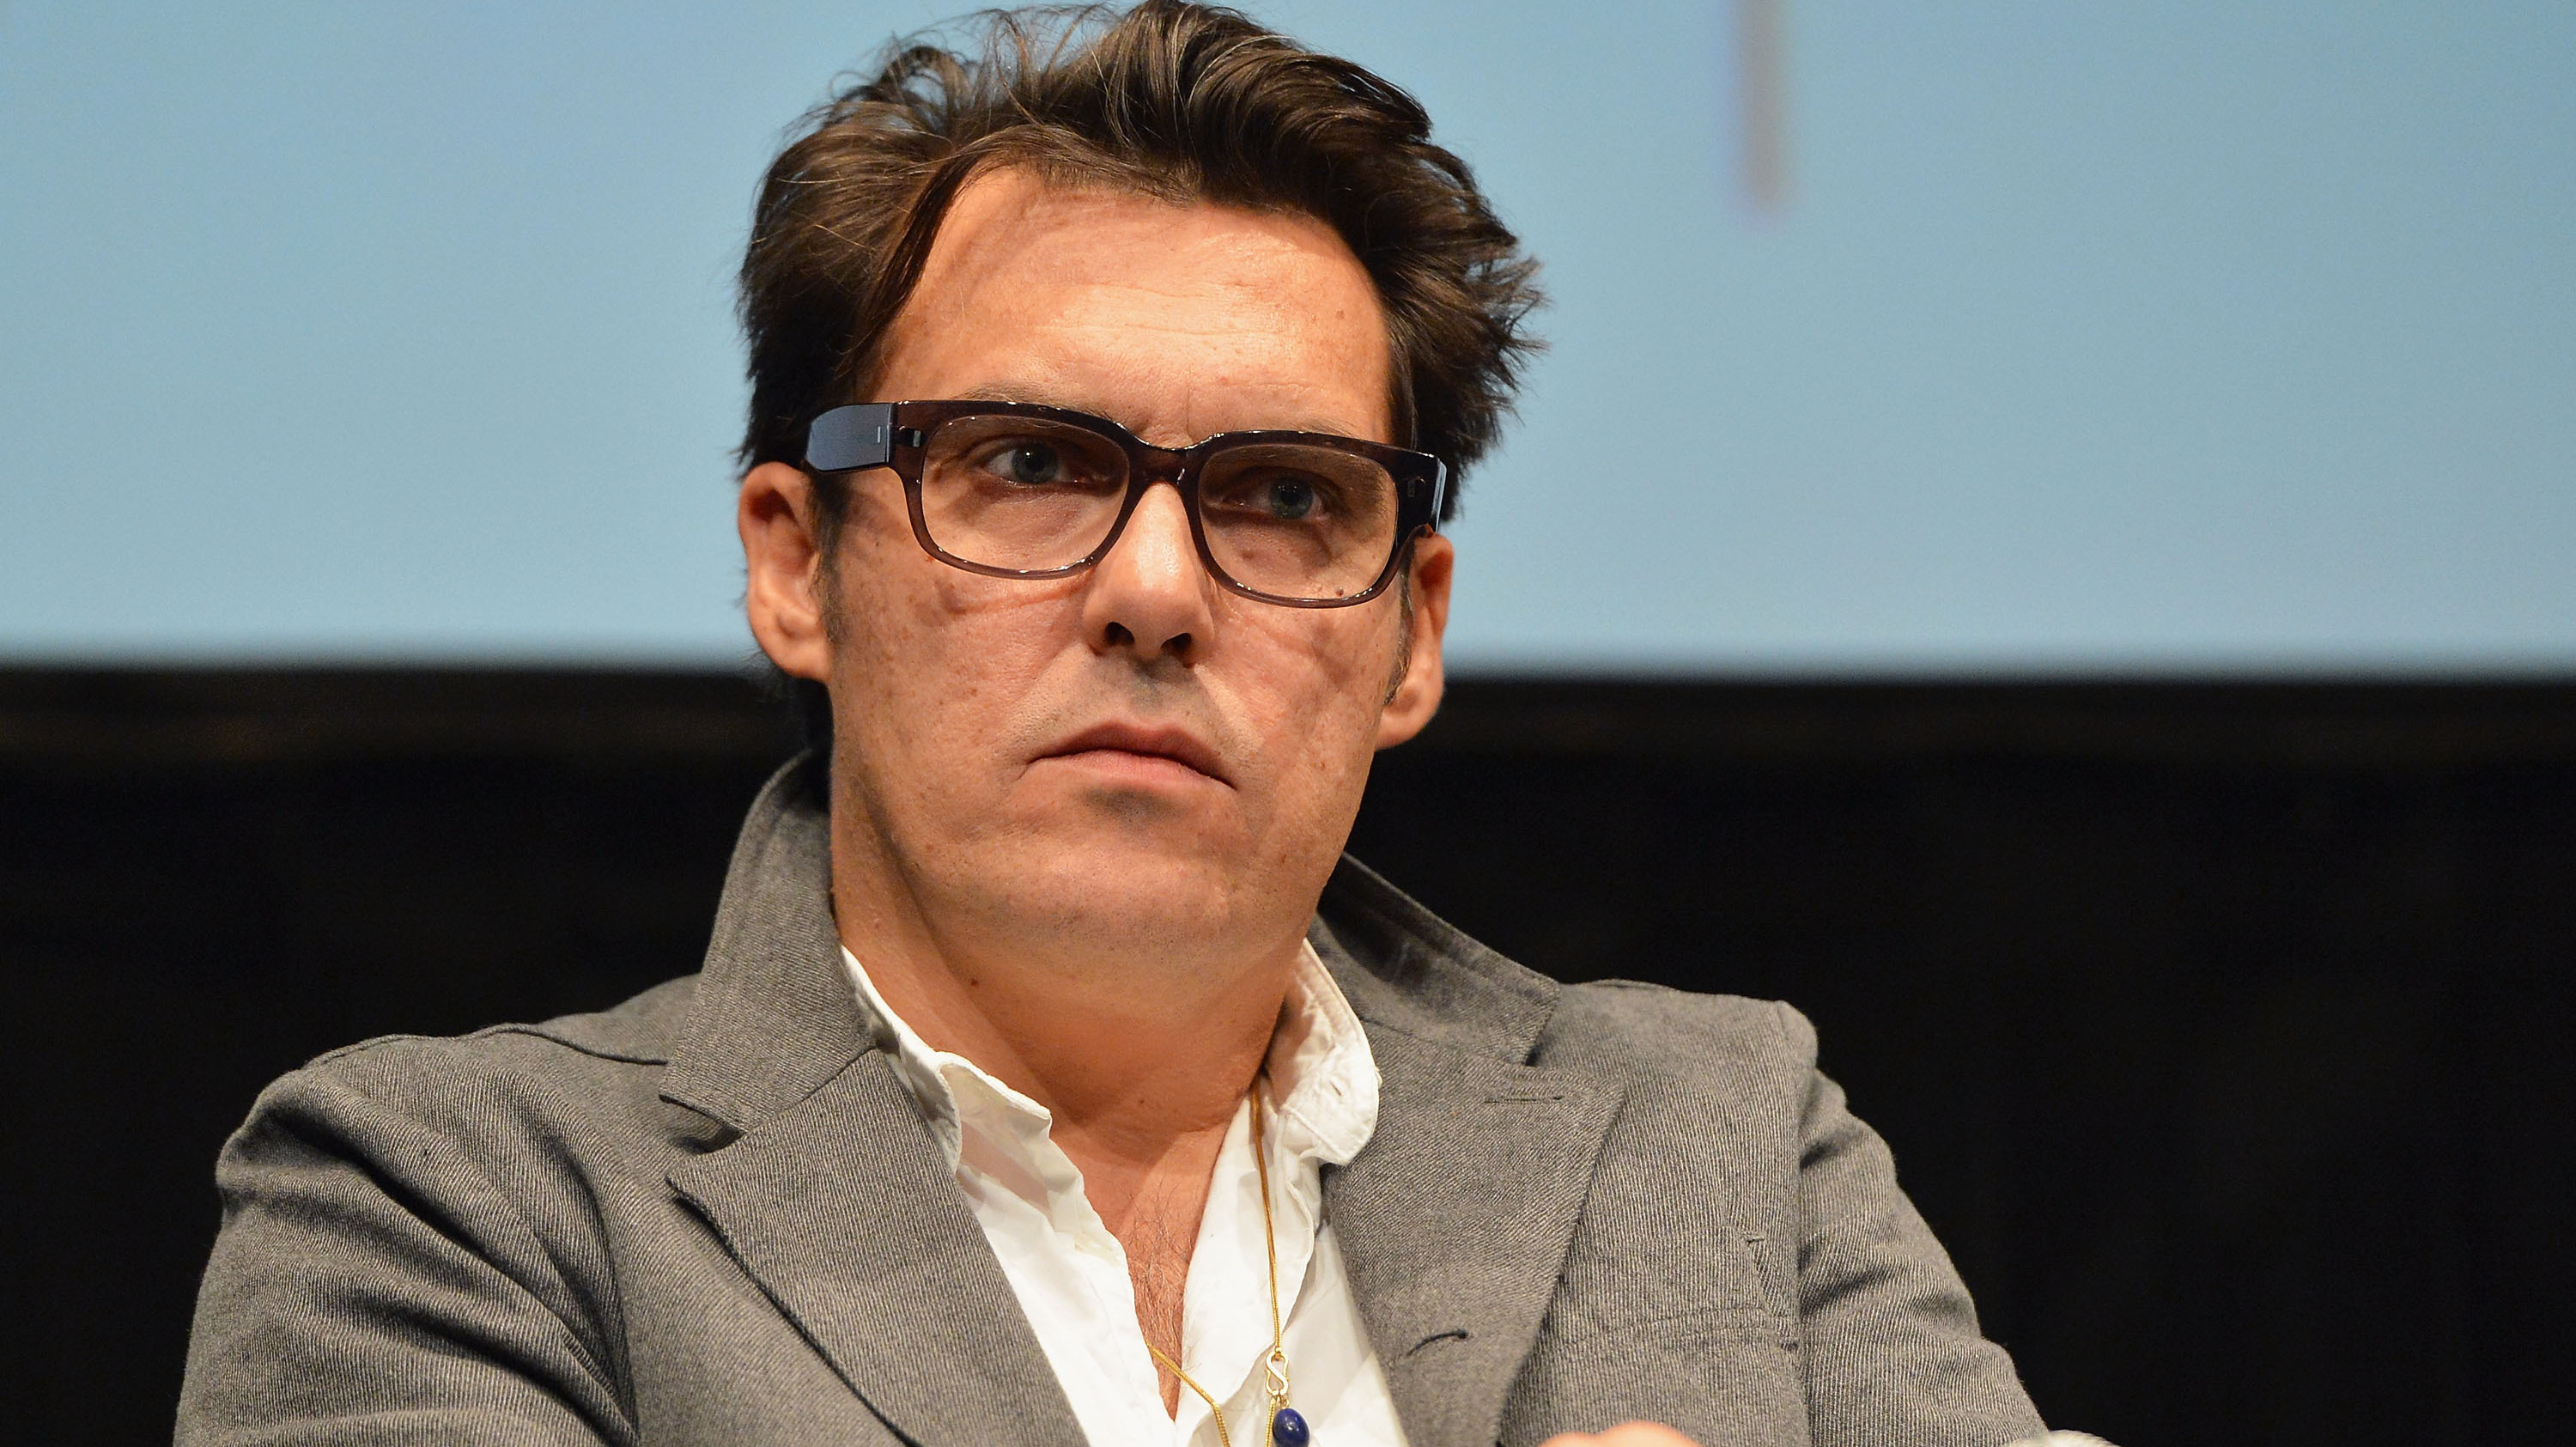 joe wright directorjoe wright director, joe wright pride and prejudice, joe wright anna karenina, joe wright wiki, joe wright photo, joe wright on keira knightley, joe wright twitter, joe wright films, joe wright vimeo, joe wright black mirror, joe wright actor, joe wright film director, joe wright imdb, joe wright 'penn', joe wright rosamund pike, joe wright movies, joe wright photography, joe wright peter pan, joe wright huddersfield town, joe wright hanna